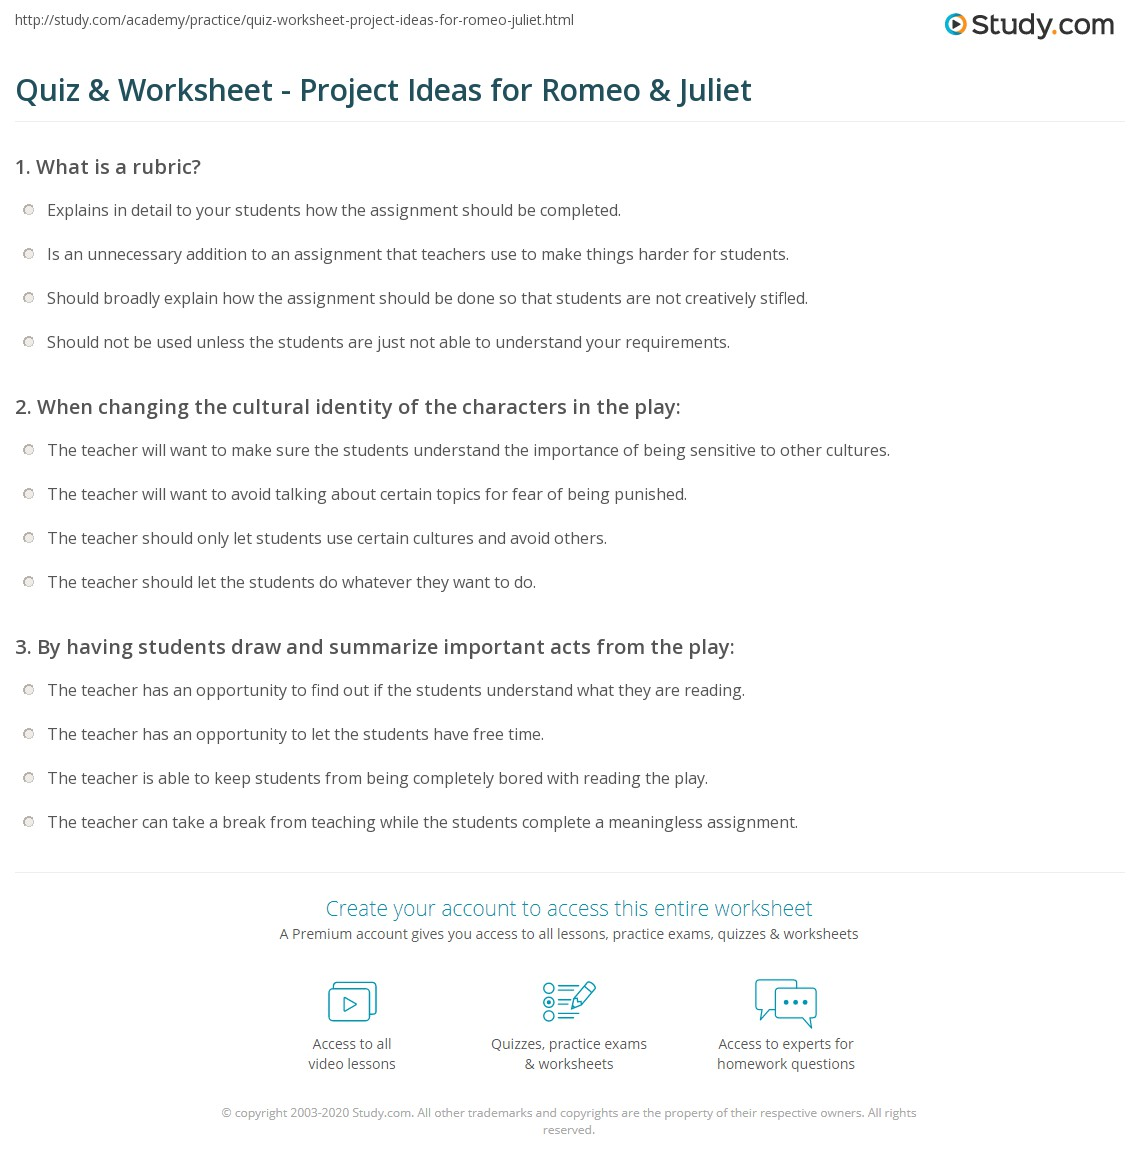 romeo and juliet theme essay prompts Themes in romeo and juliet chapter 8  click add to located below the video player and follow the prompts to name your course and save your.